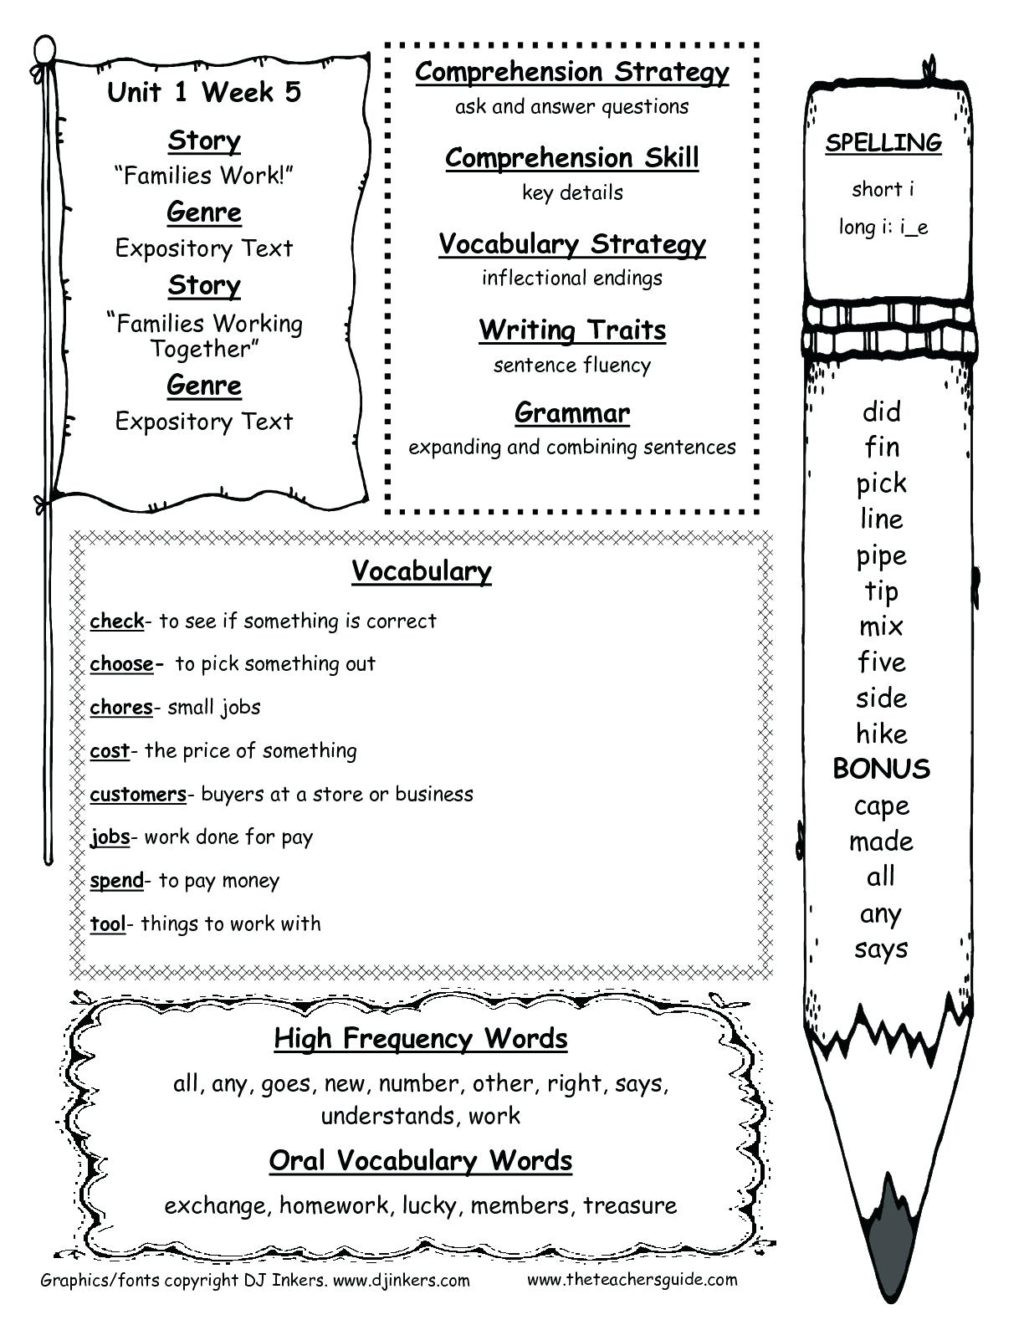 7th Grade Math Enrichment Worksheets Worksheet Free 3rd Grade Math Worksheets Enrichment 7th